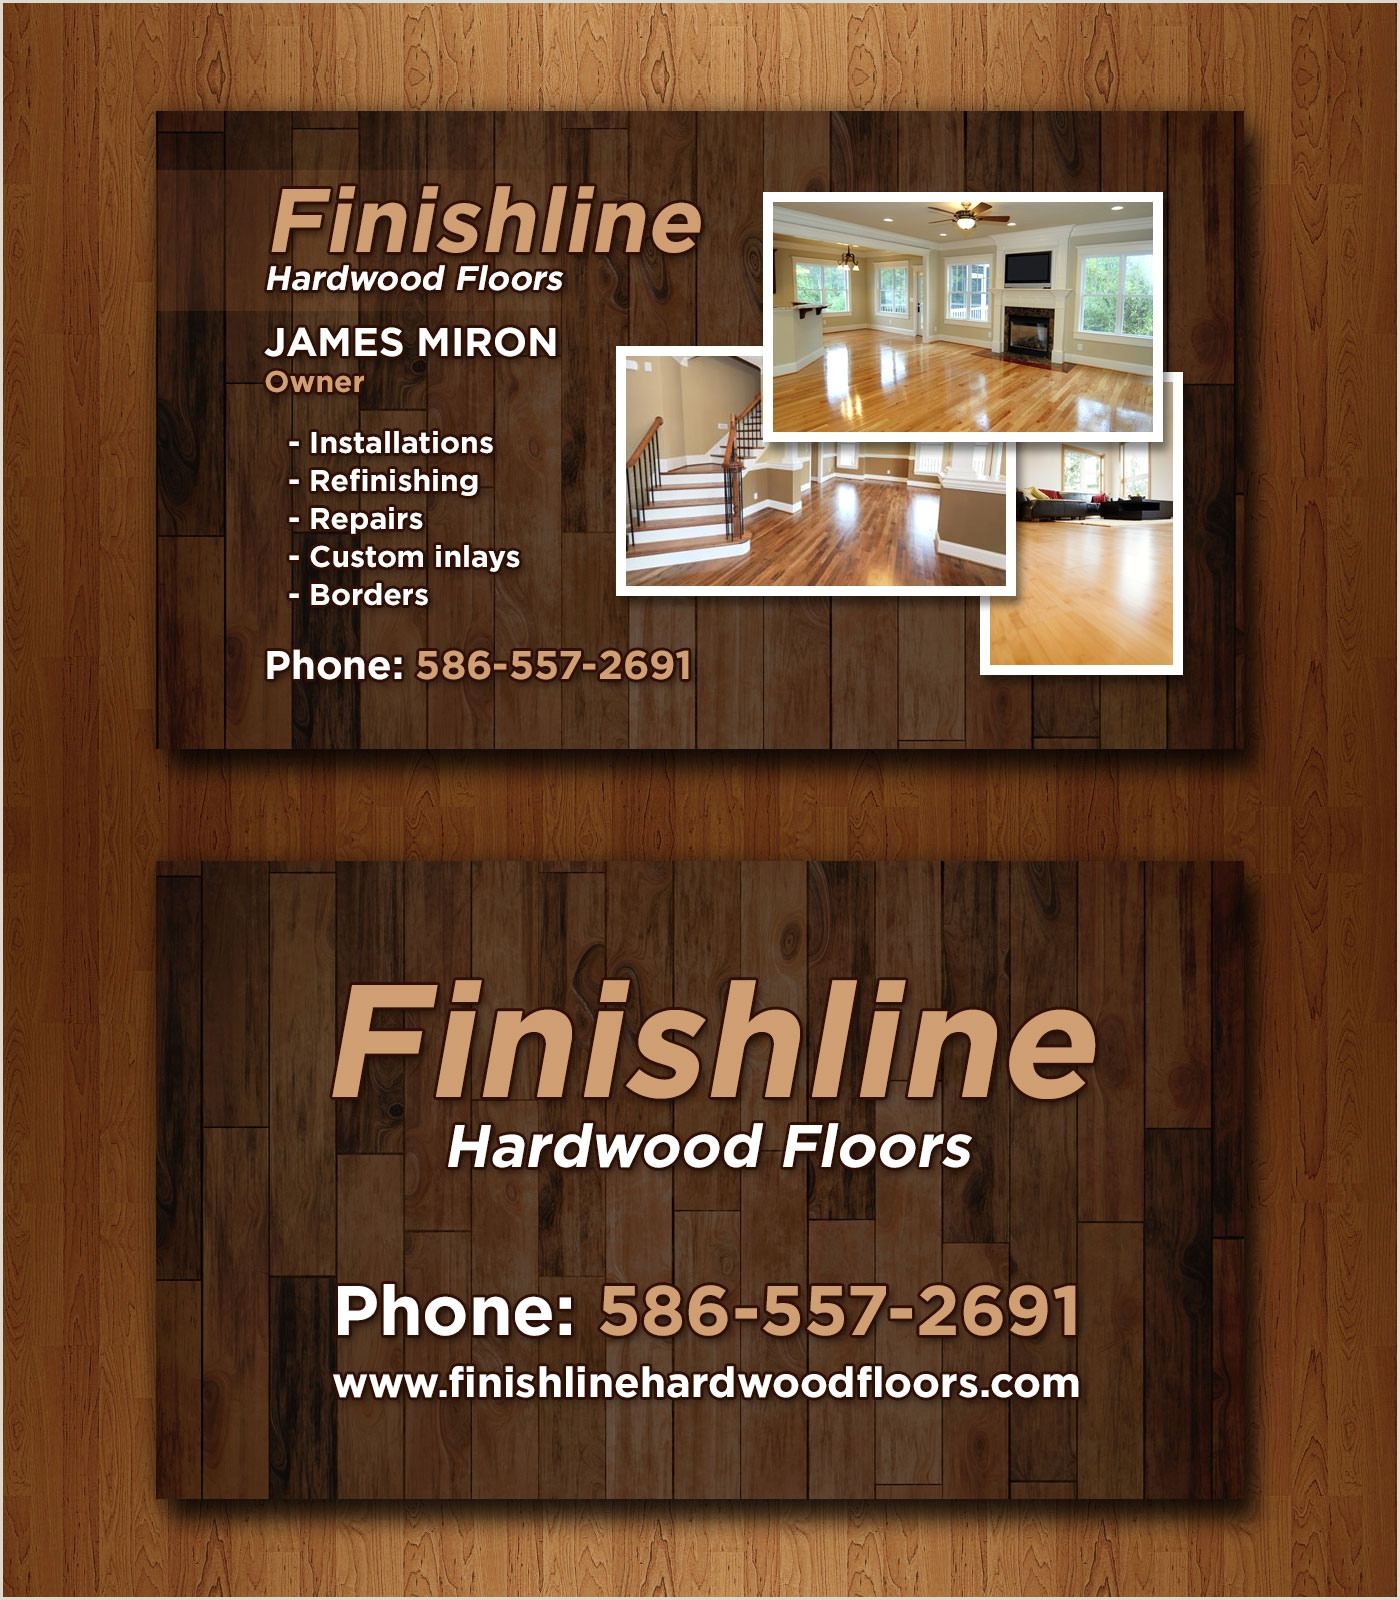 Most Amazing Business Cards 14 Popular Hardwood Flooring Business Card Template